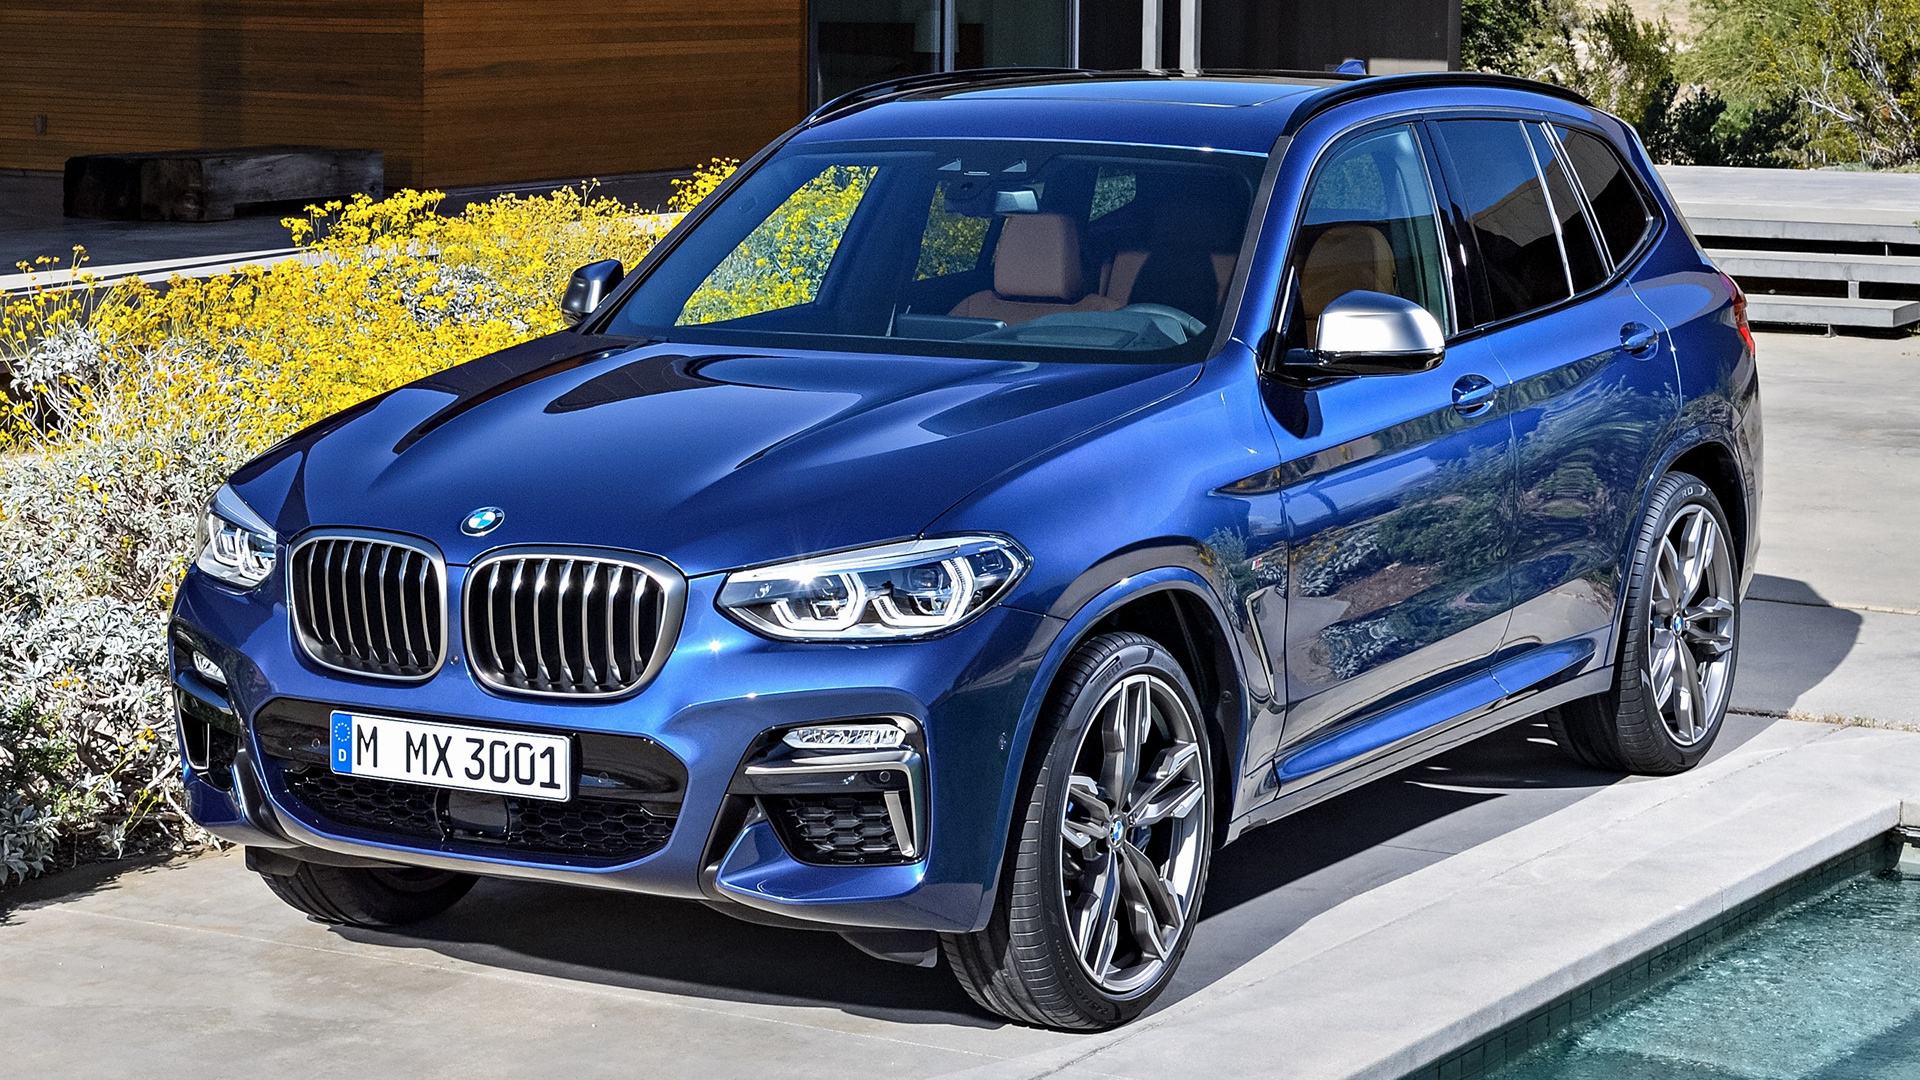 bmw x3 m40i 2017 wallpapers and hd images car pixel. Black Bedroom Furniture Sets. Home Design Ideas